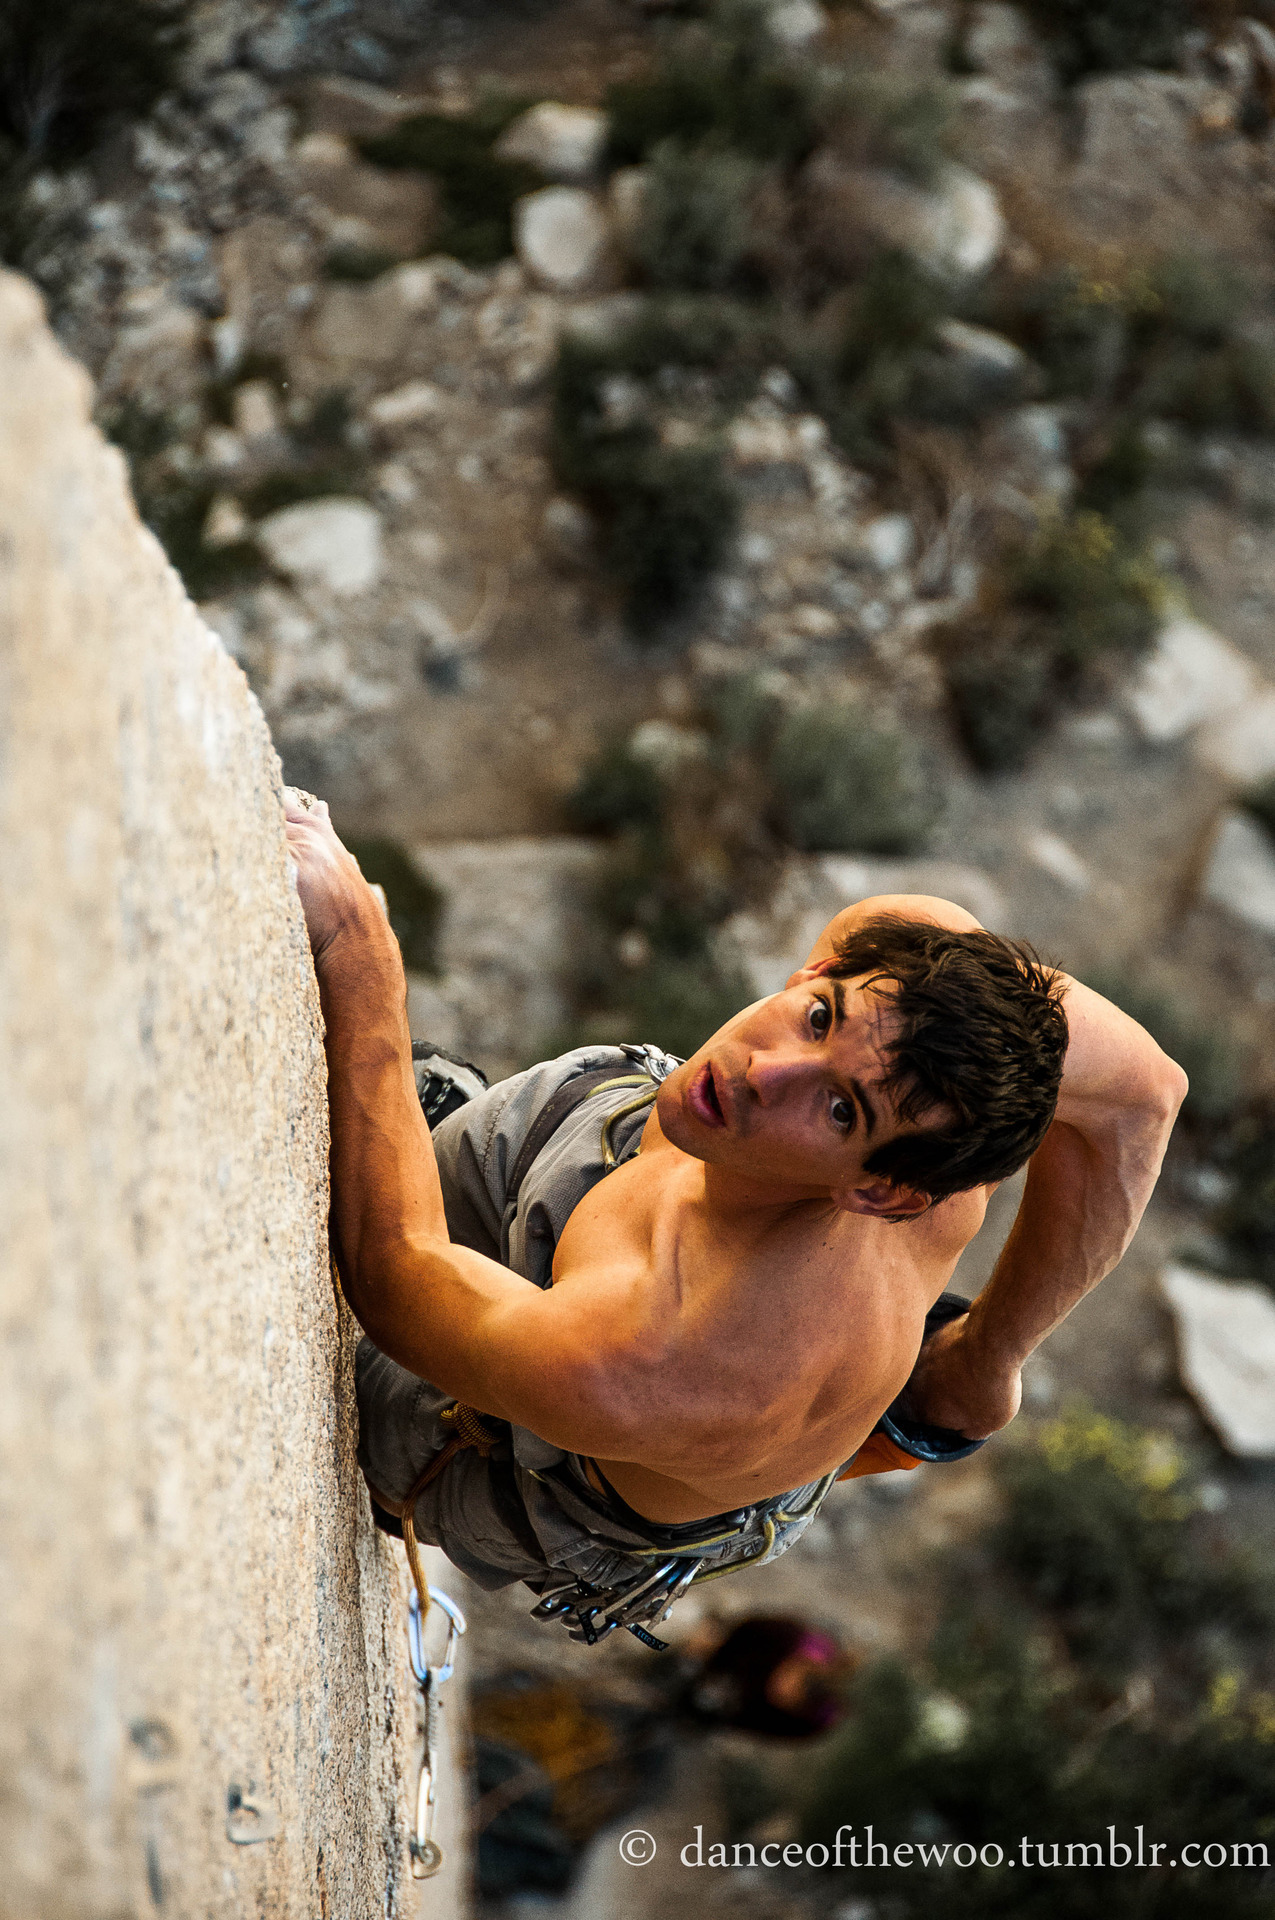 coffeeandclifbars:  danceofthewoo:  alex honnold. ecstasy, 5.13a. pine creek canyon, CA. june 2012. onsighted, of course.  So awesome.   Beast!